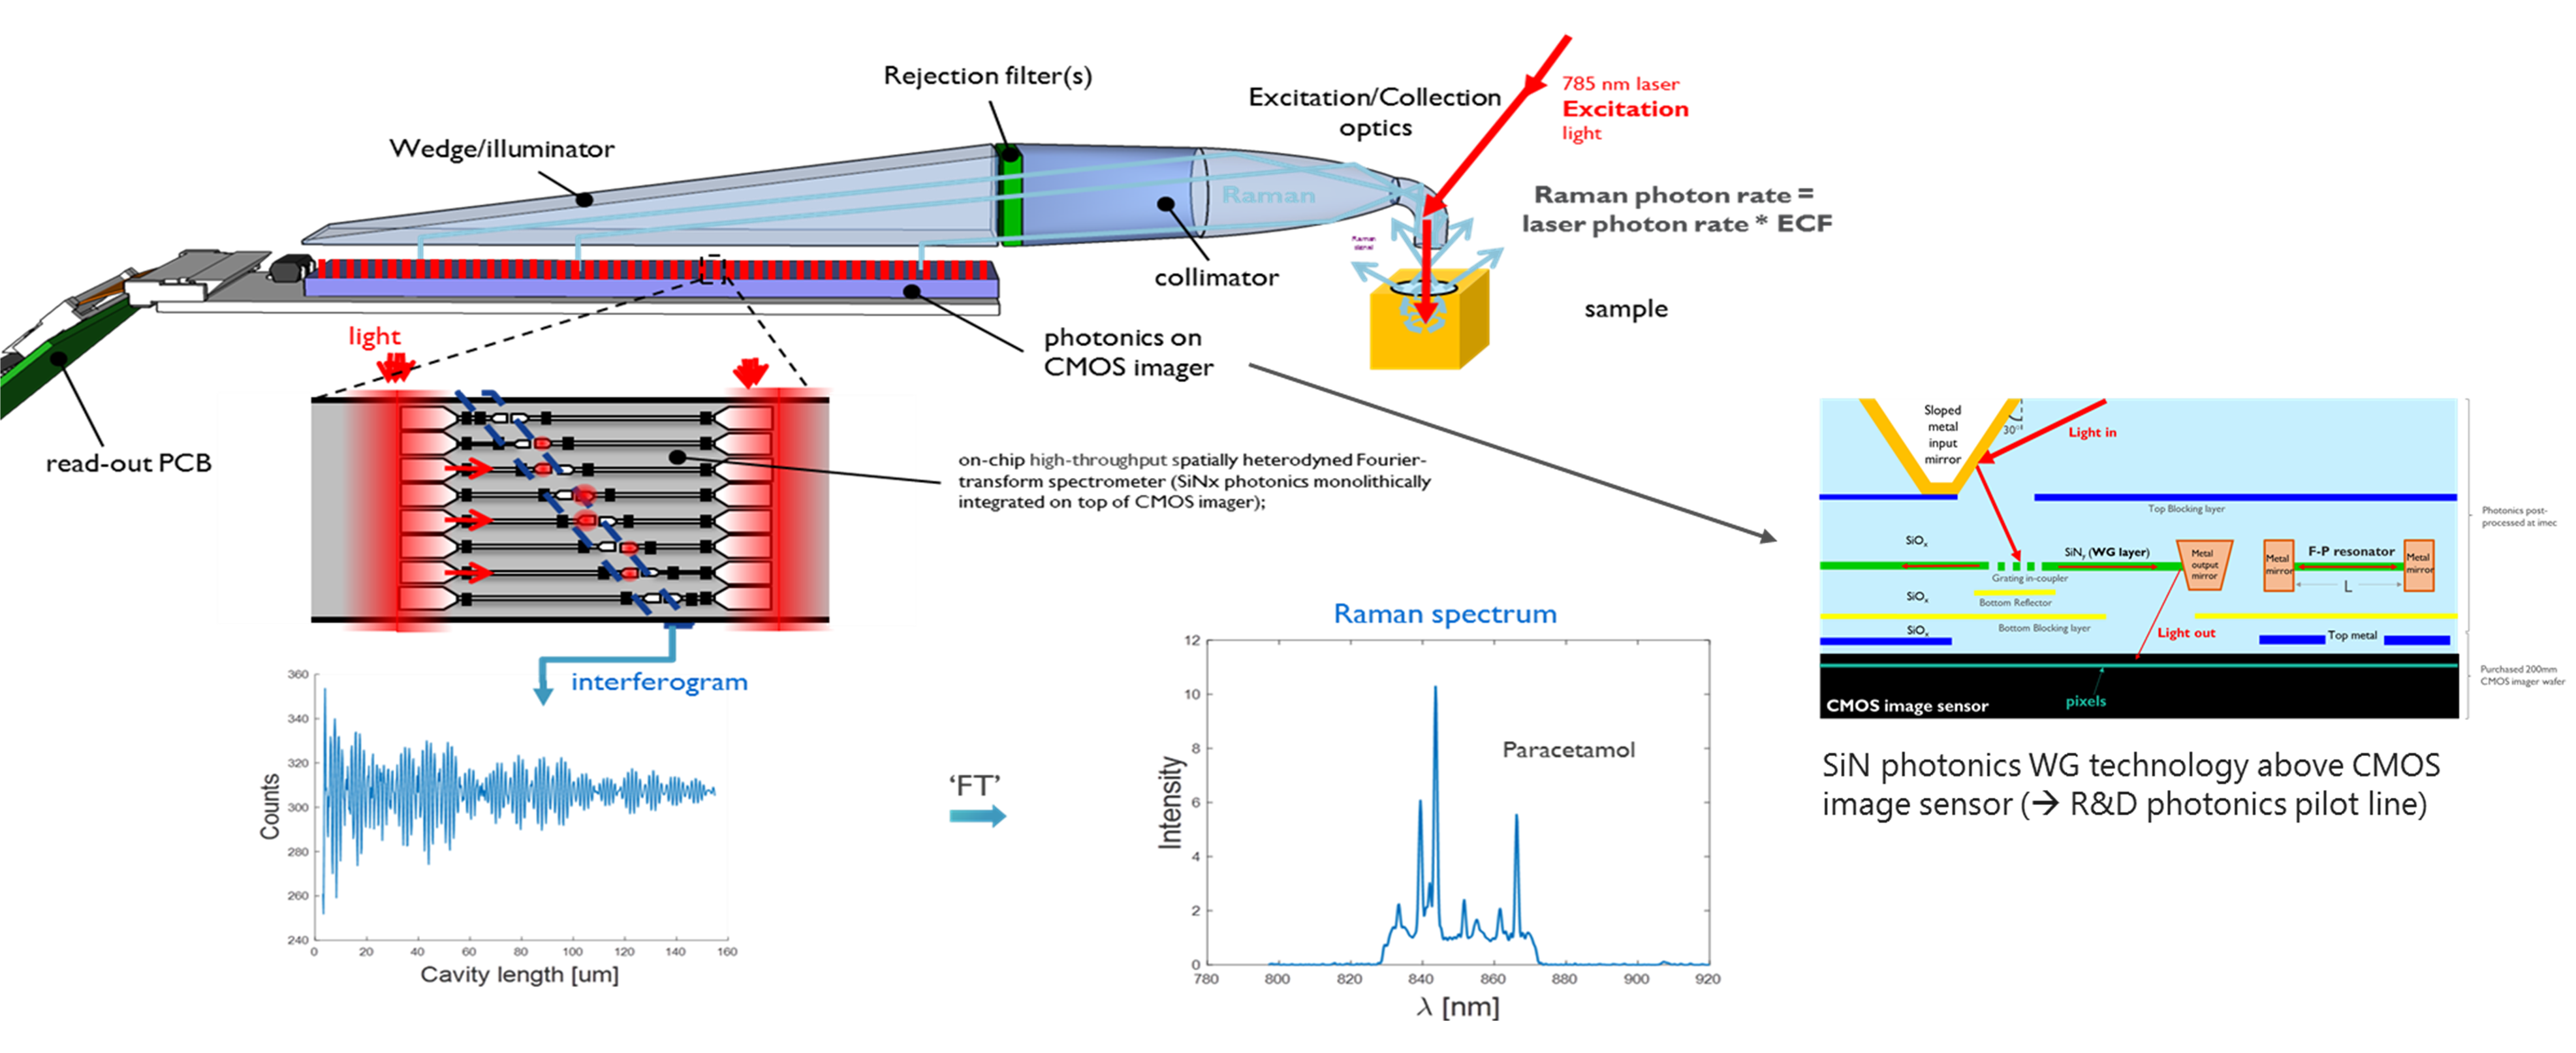 Concept of the patented solution made by imec researchers for a handheld Raman spectrometer, using a million interferometers on top of a CMOS image sensor. This build-up allows for extreme miniaturization without compromising on the etendue of the sample. This way, also complex samples can be measured. Furthermore, by using chip technology, the price of the device can be much lower than current devices.